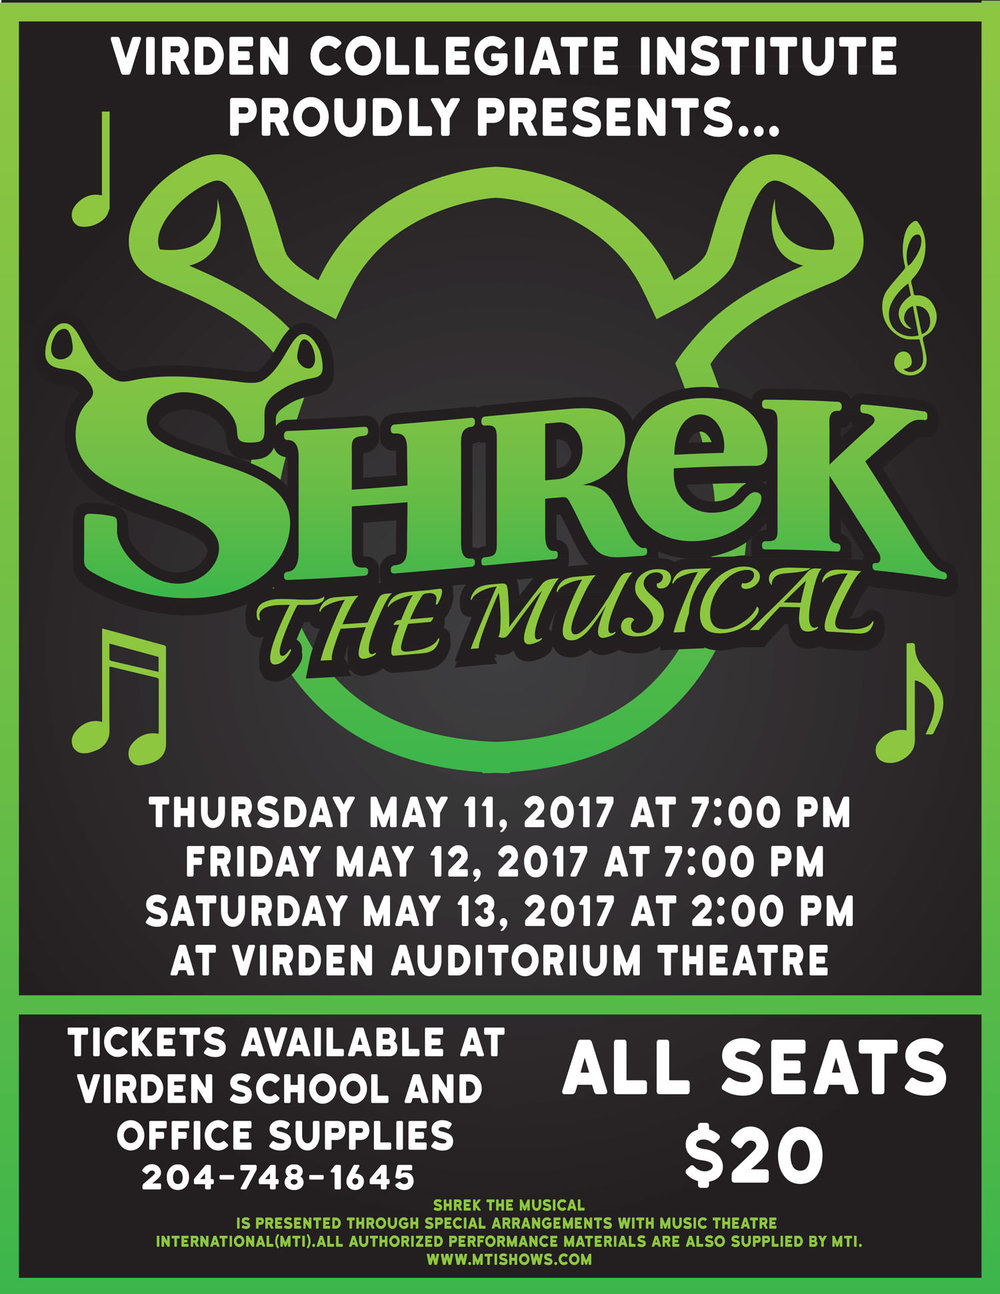 Virden Collegiate Institute: Shrek the Musical